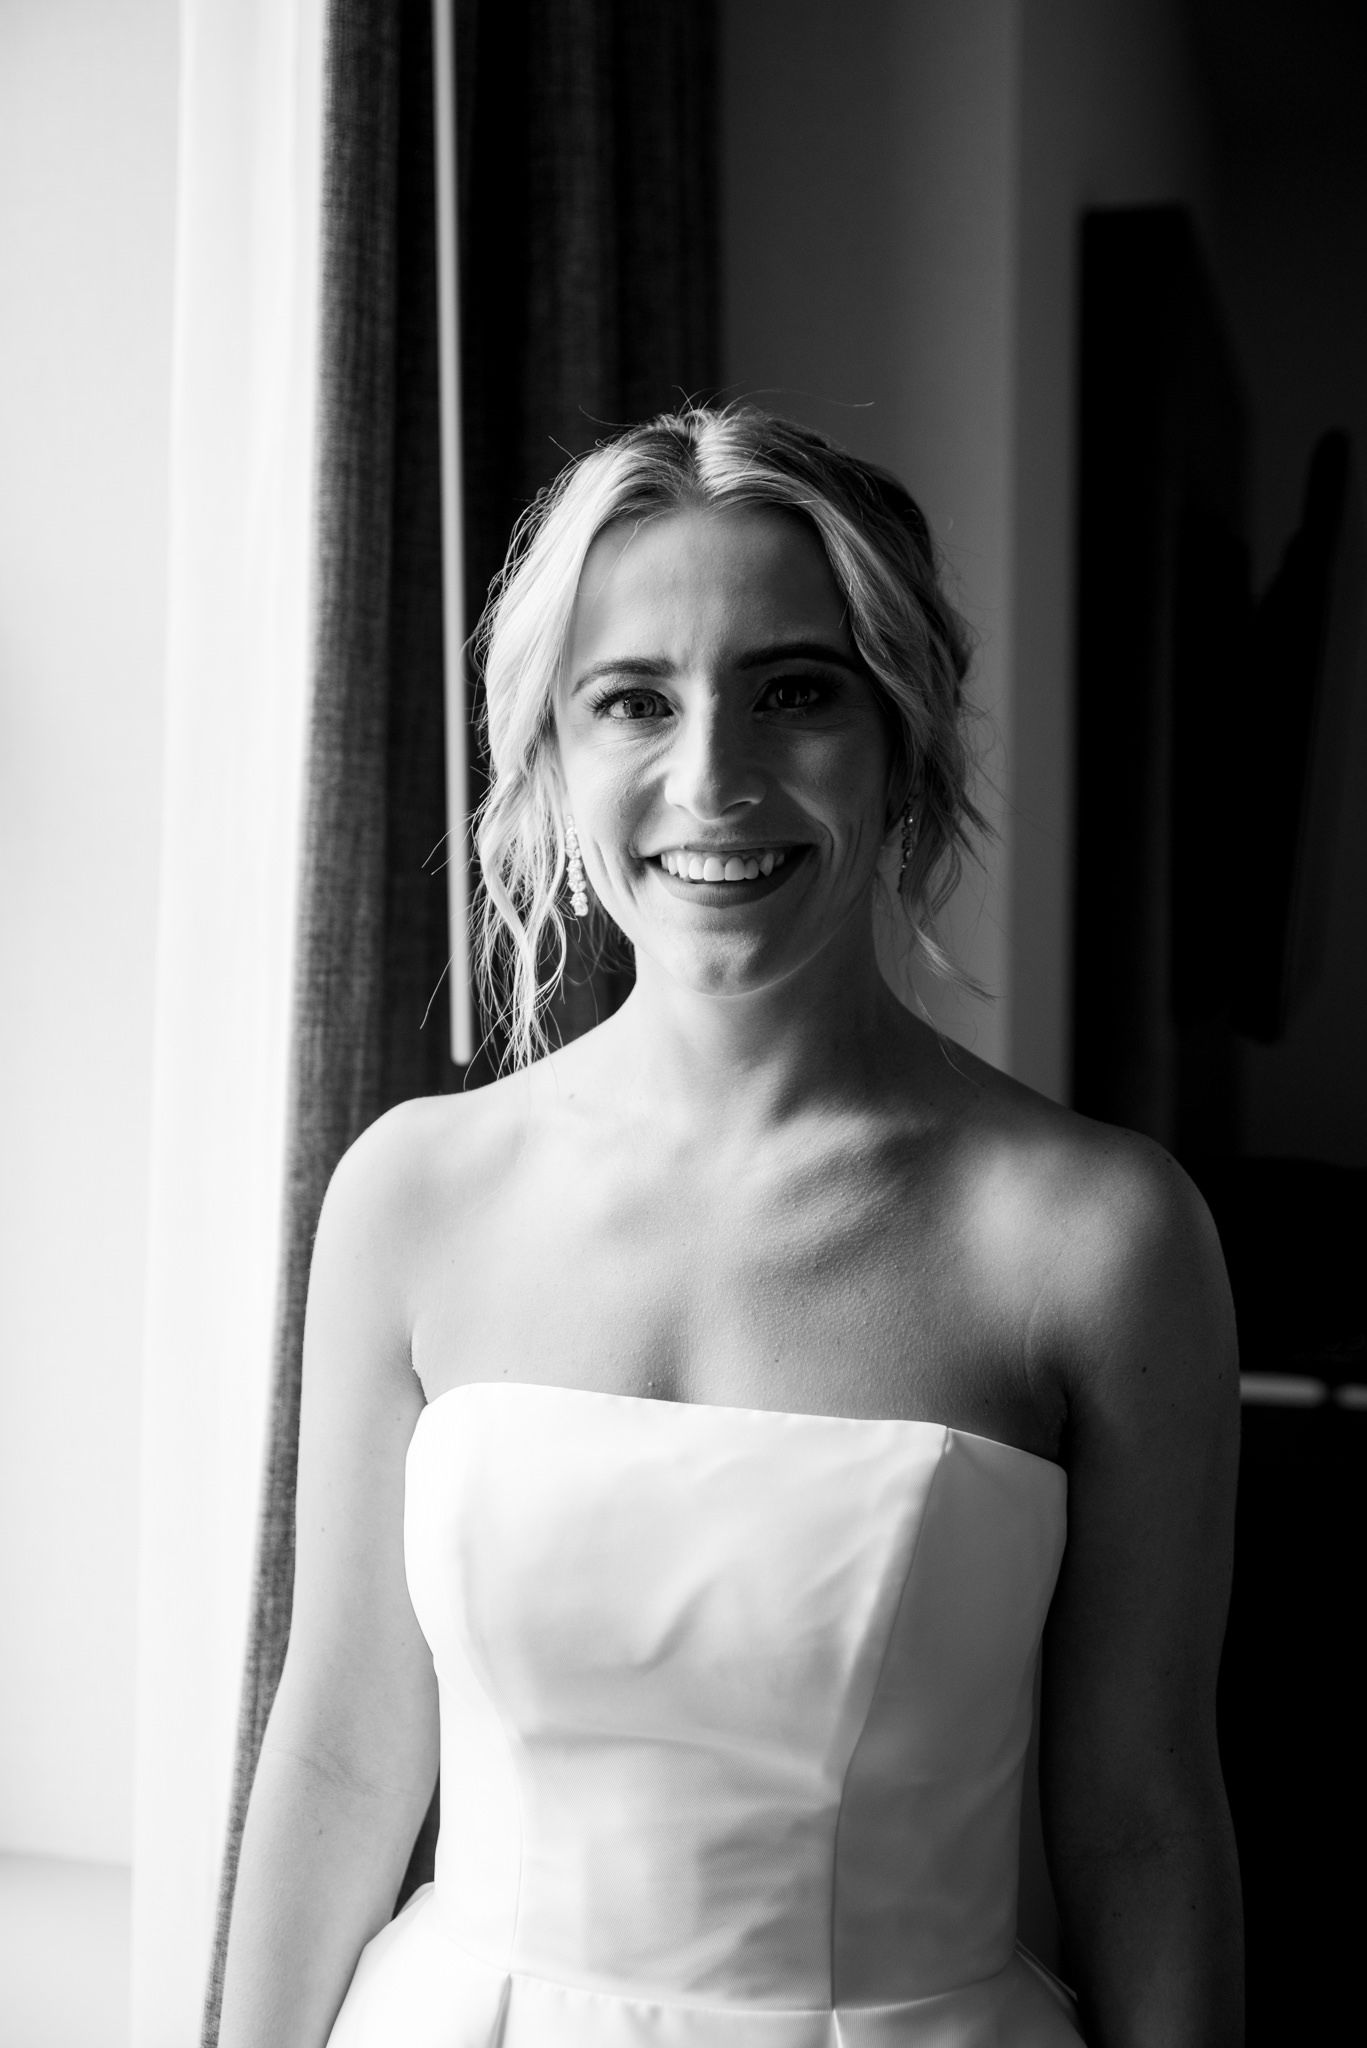 blonde bride with updo and strapless wedding dress smiling while getting ready